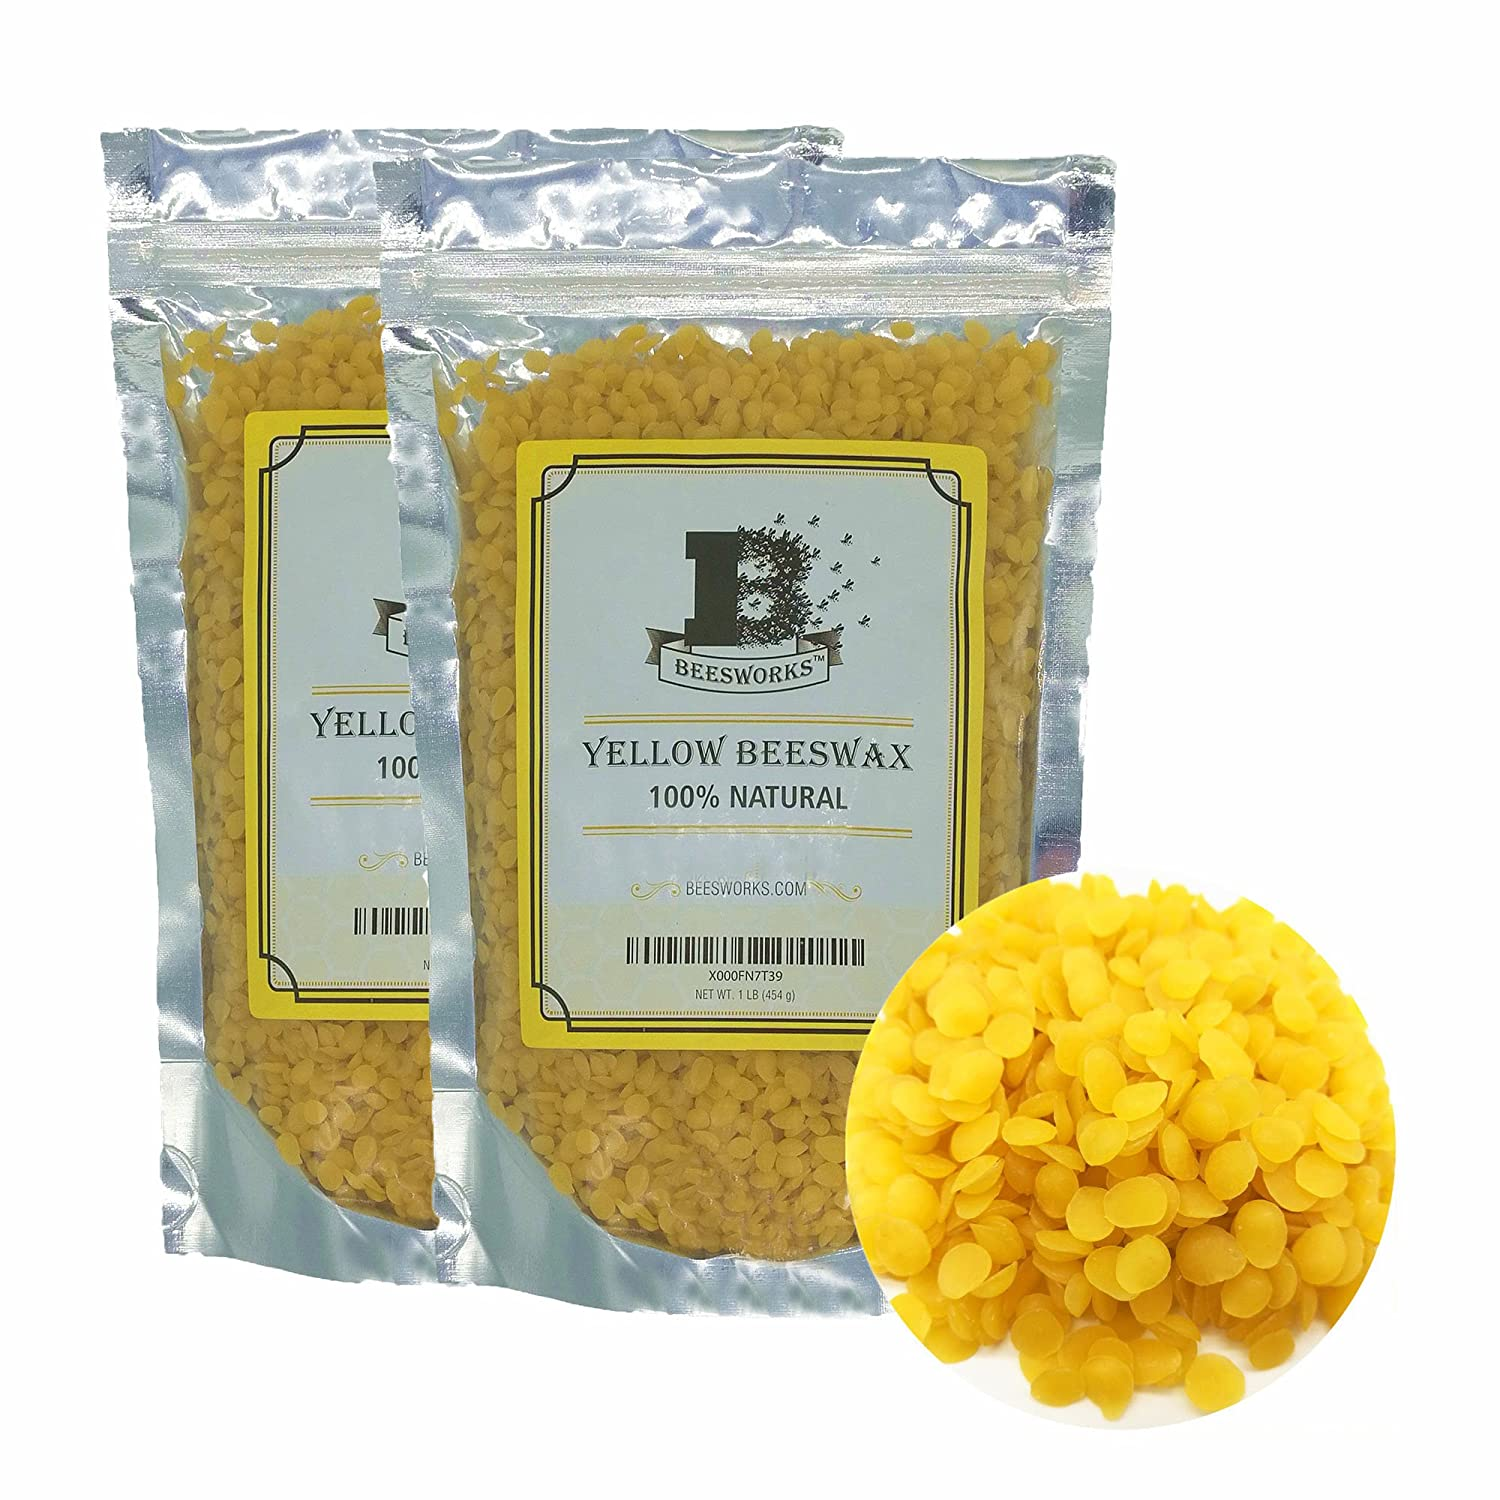 Yellow Beeswax Pellets 2lb-by Beesworks -Pack of (2) 1lb Packages - Cosmetic Grade-Premium Quality for Many Uses 4336841640